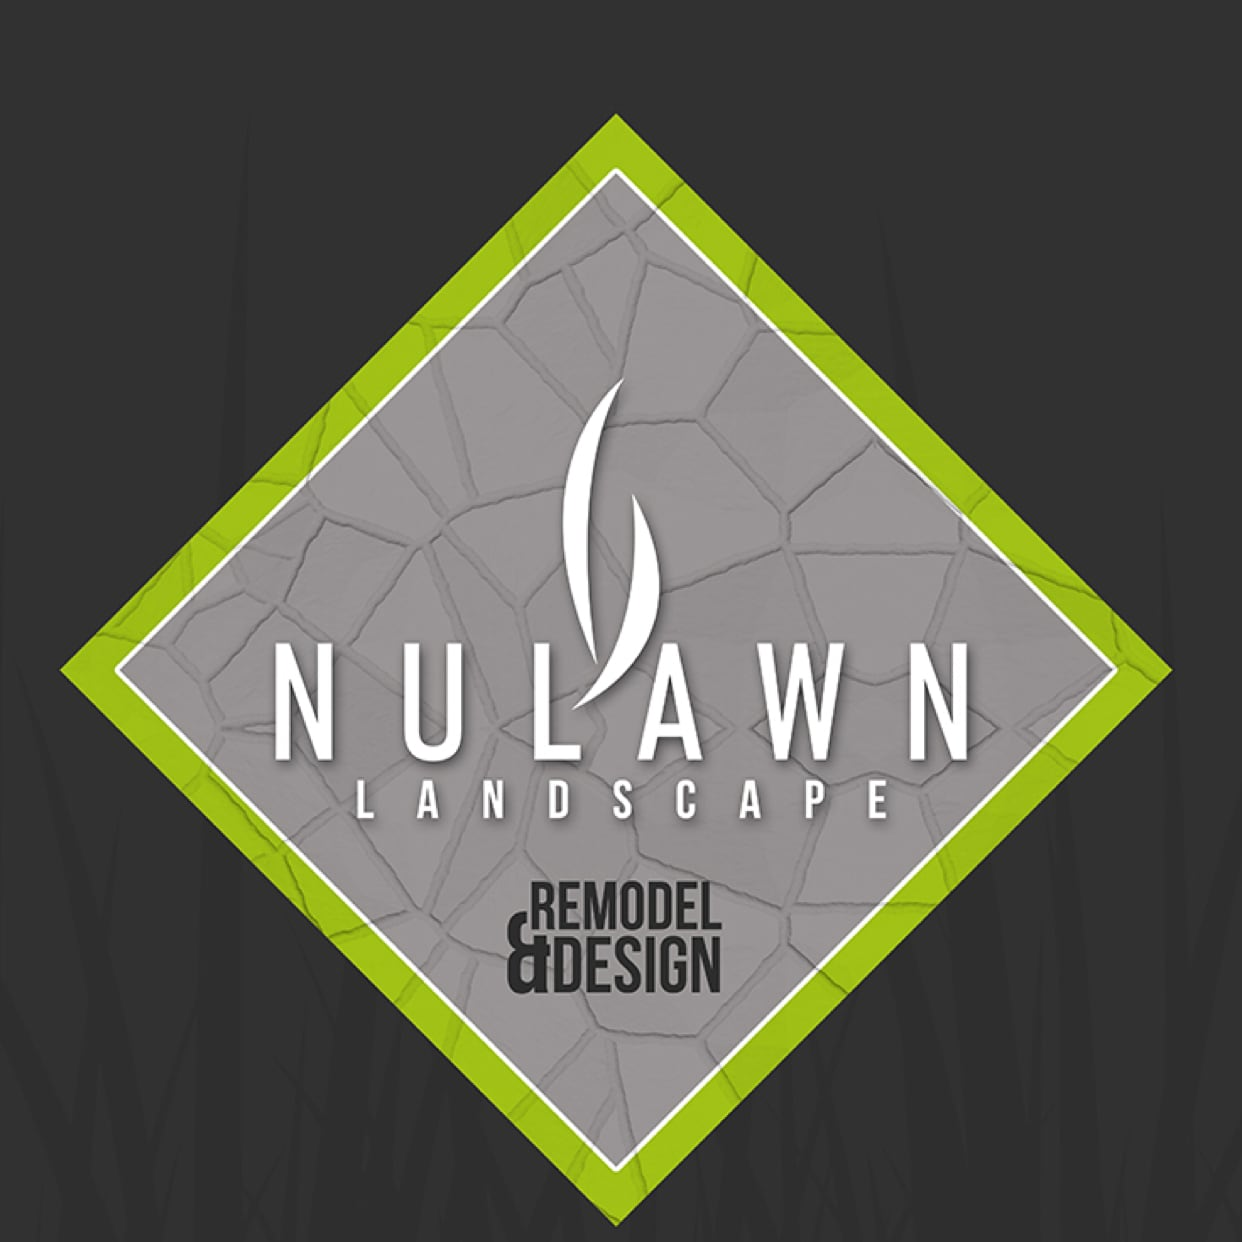 NULAWN Landscape Remodel and Design